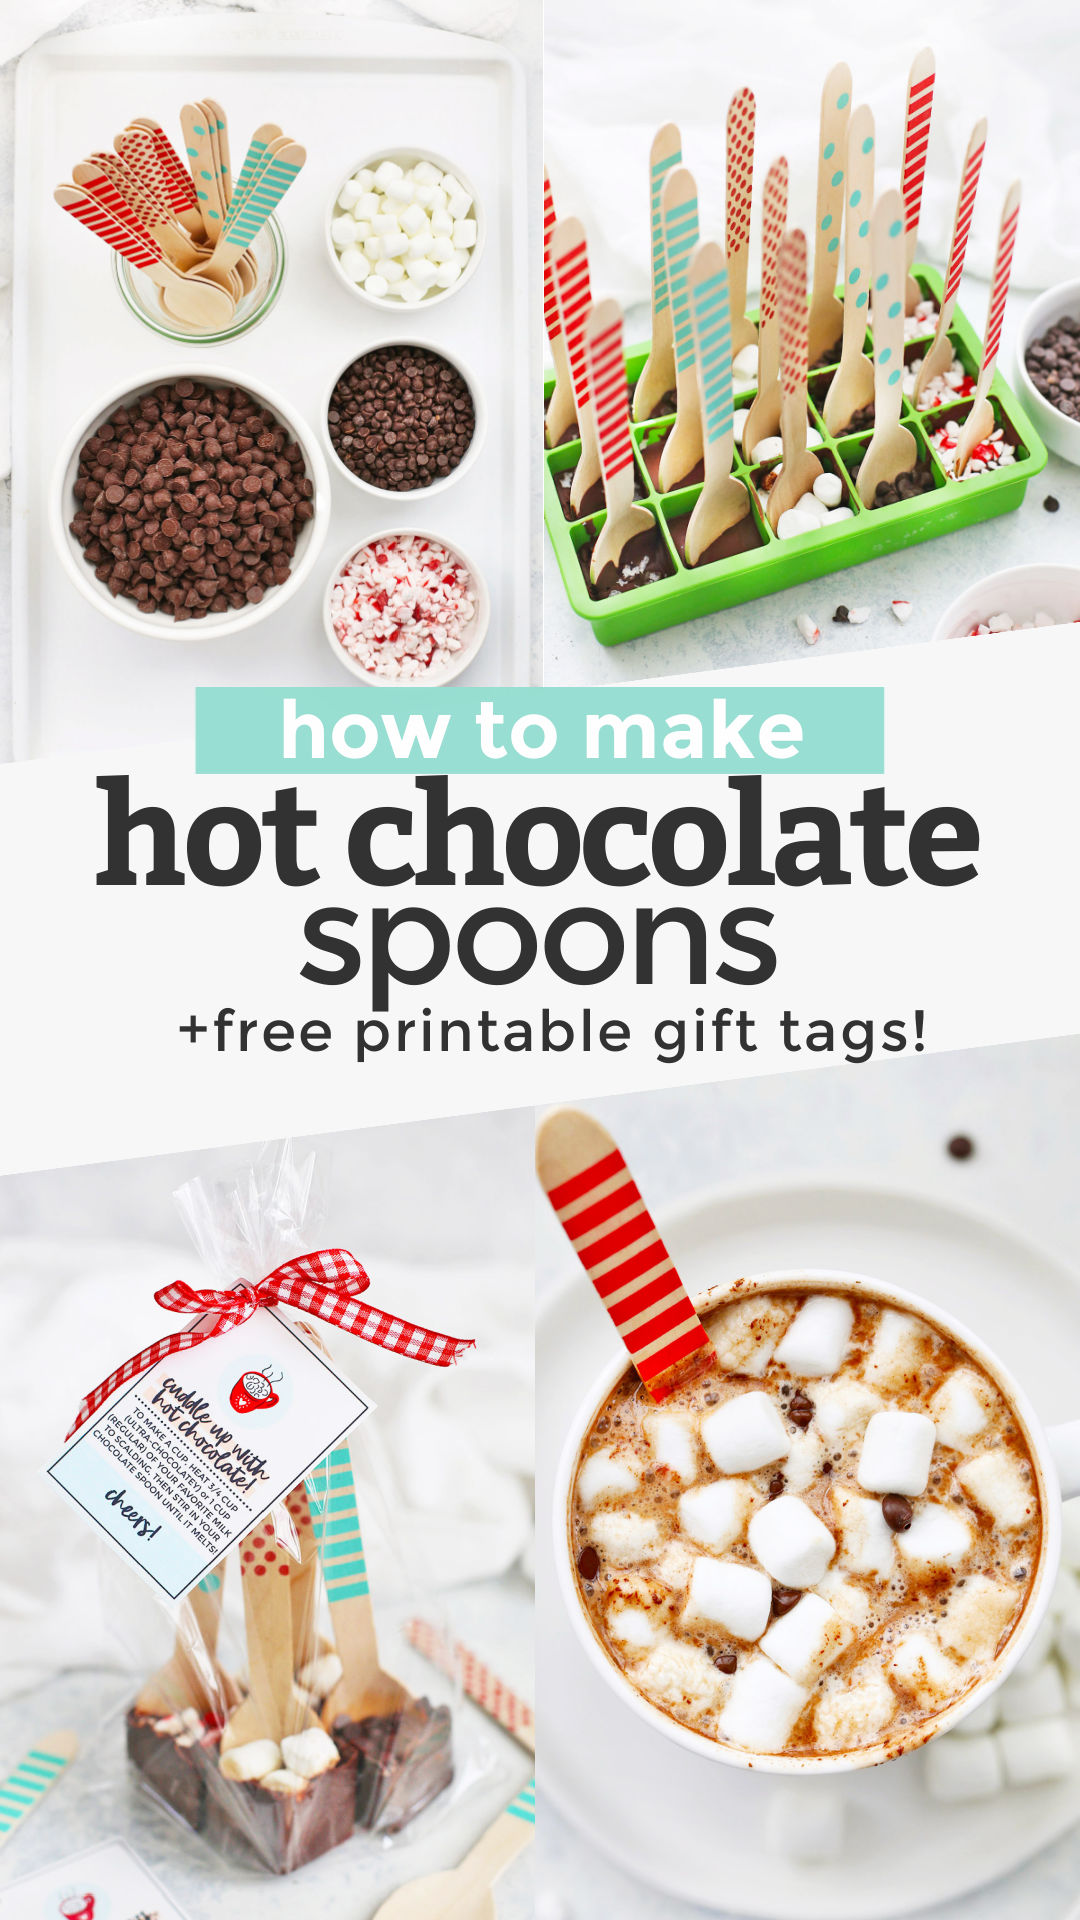 Hot Chocolate Spoons + FREE PRINTABLE GIFT TAGS! These chocolate-coated spoons are perfect for making homemade hot chocolate. They make a fun winter project or easy DIY holiday gift for friends and neighbors! (Gluten-free, dairy-free, paleo & vegan-friendly!) #hotchocolate #diygift #ediblegift #holidaygift #hotcocoa #hotchocolatespoon #vegan #allergyfriendly #paleo #freeprintable #printablegifttag